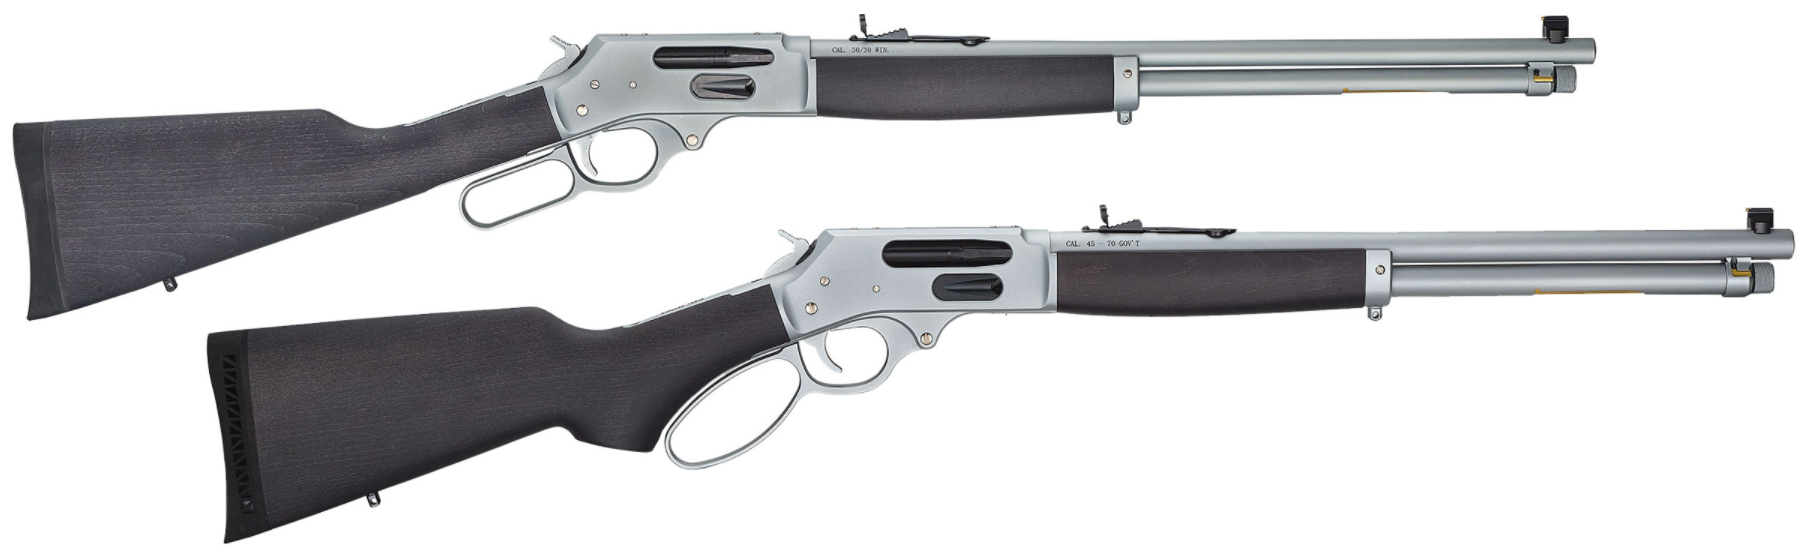 Henry Rifle Caliber Lever Actions